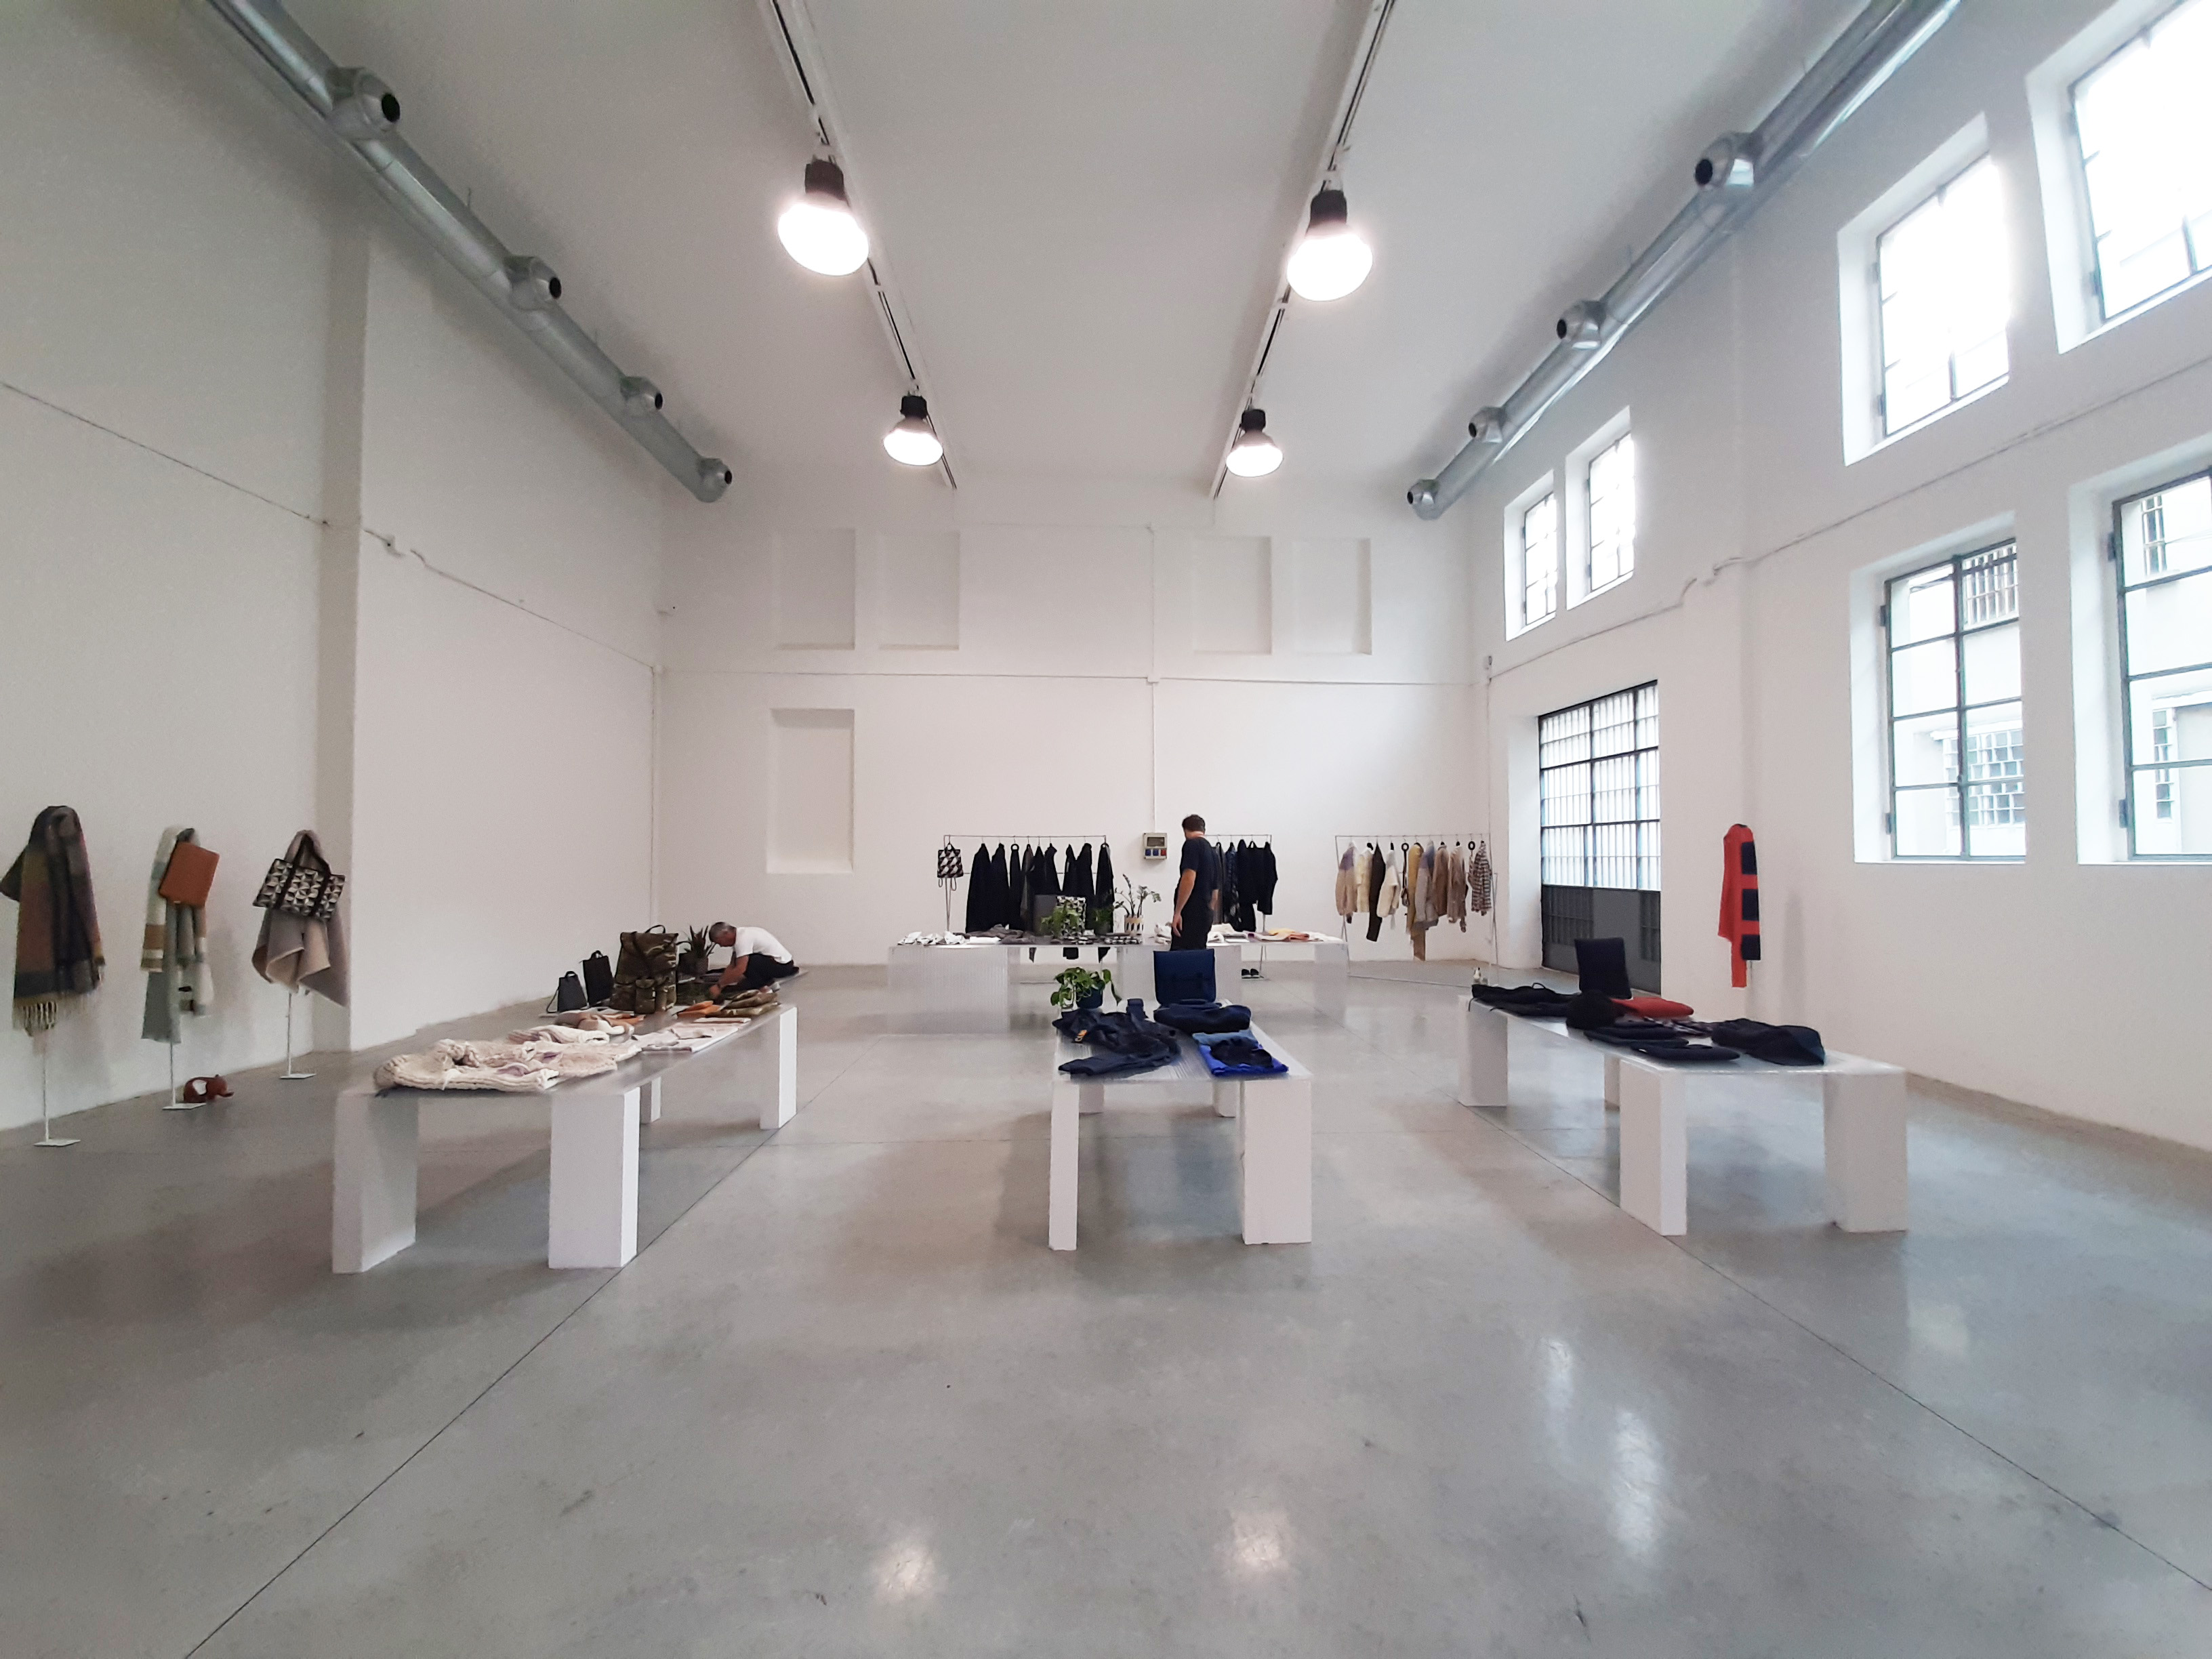 Opificio 31-Officina 31 - Open space, Spazio industriale di 180mq in Via Tortona 31 | location allestita 1